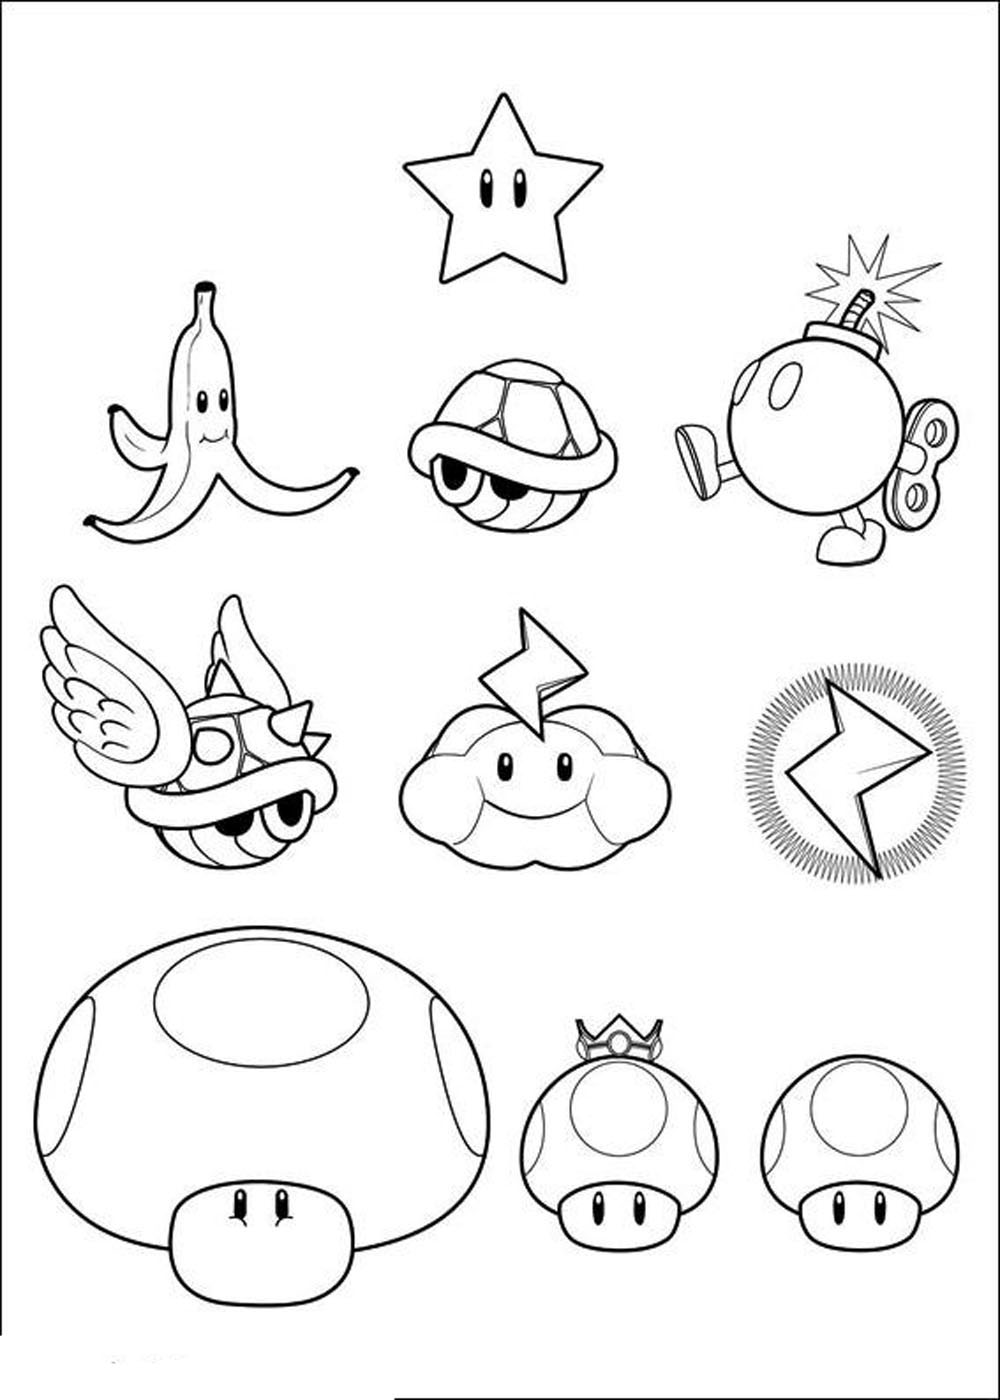 free printable super mario coloring pages coloring coloring free mario and luigis pdf printable free super pages mario printable coloring